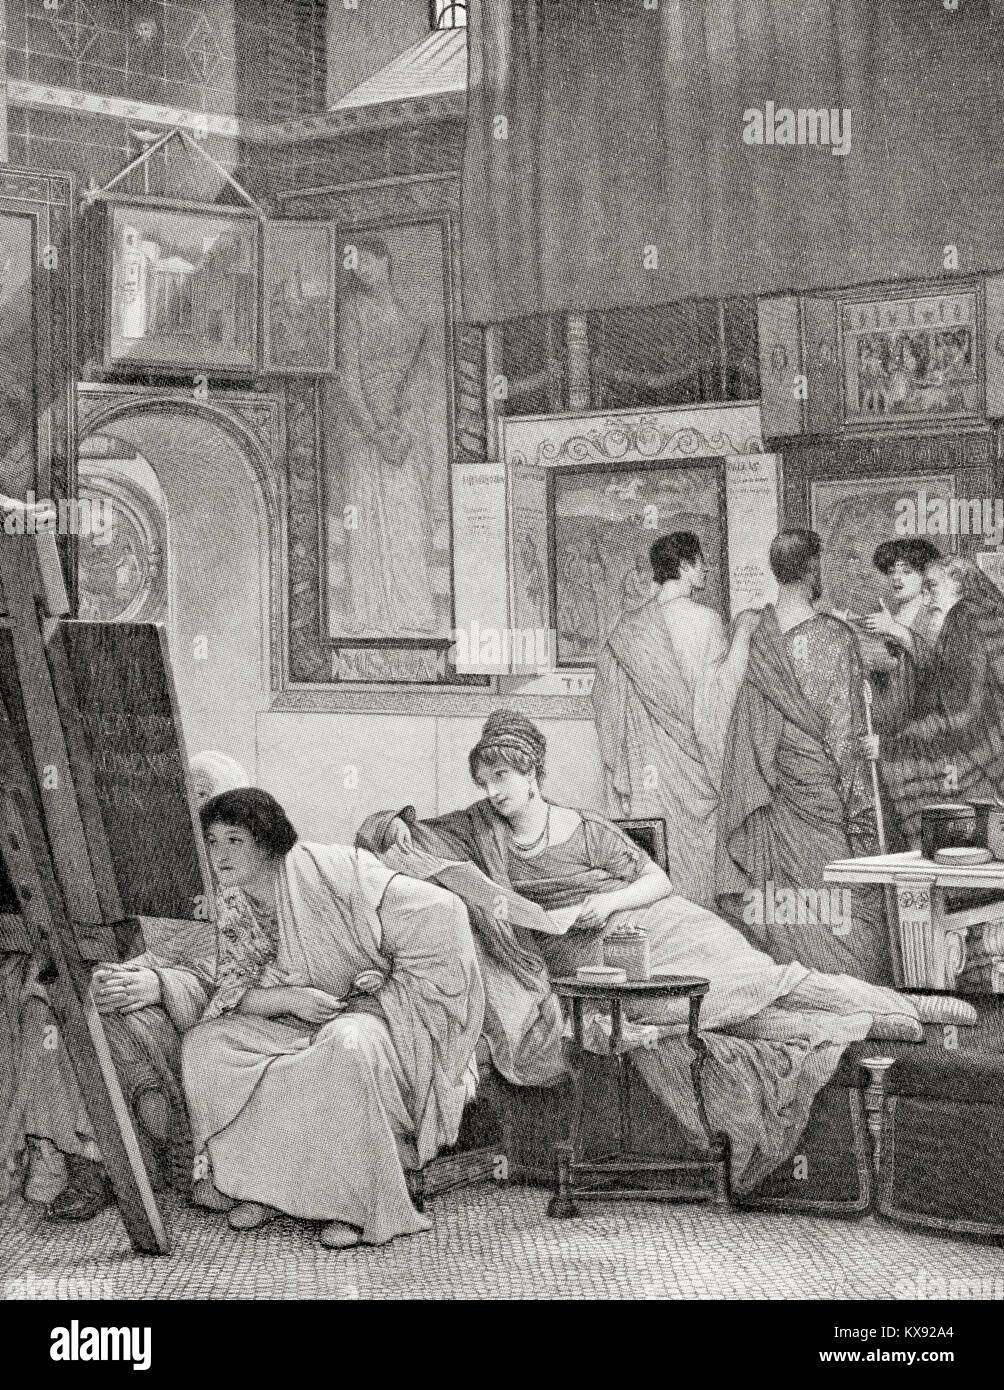 A Roman art gallery.  From Hutchinson's History of the Nations, published 1915. - Stock Image